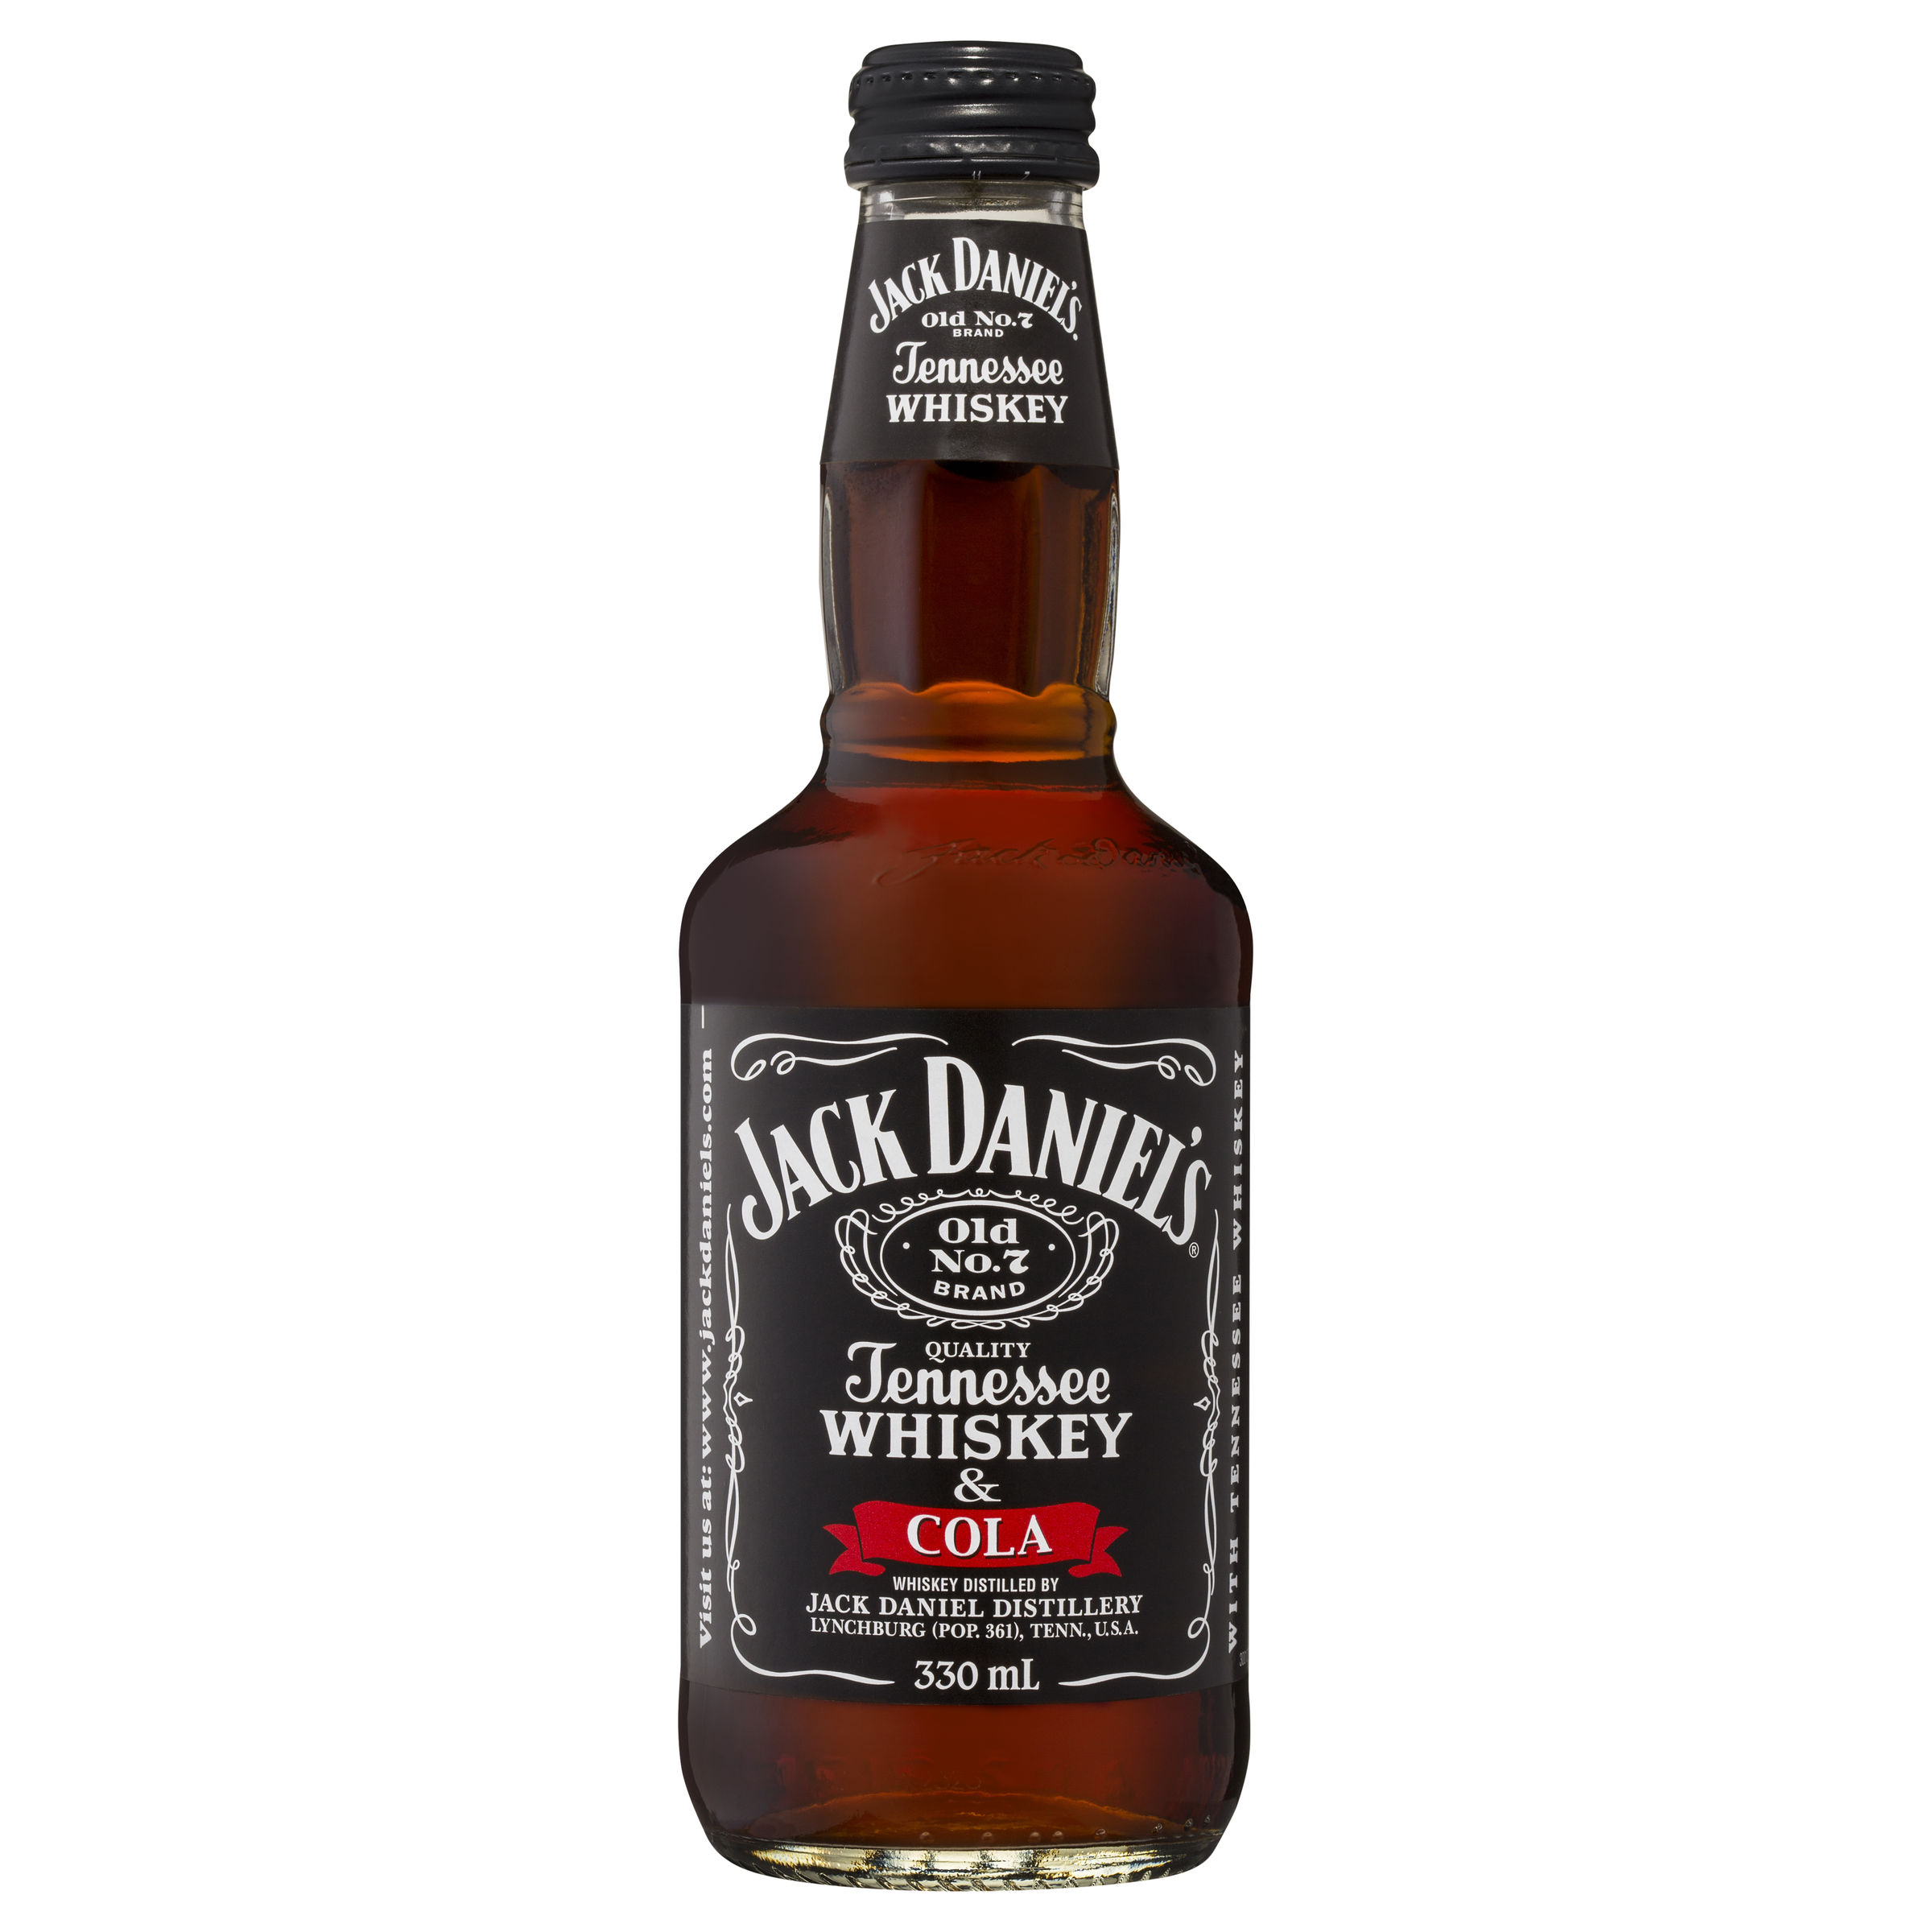 JACK DANIELS TENNESSEE WHISKEY & COLA BOTTLE